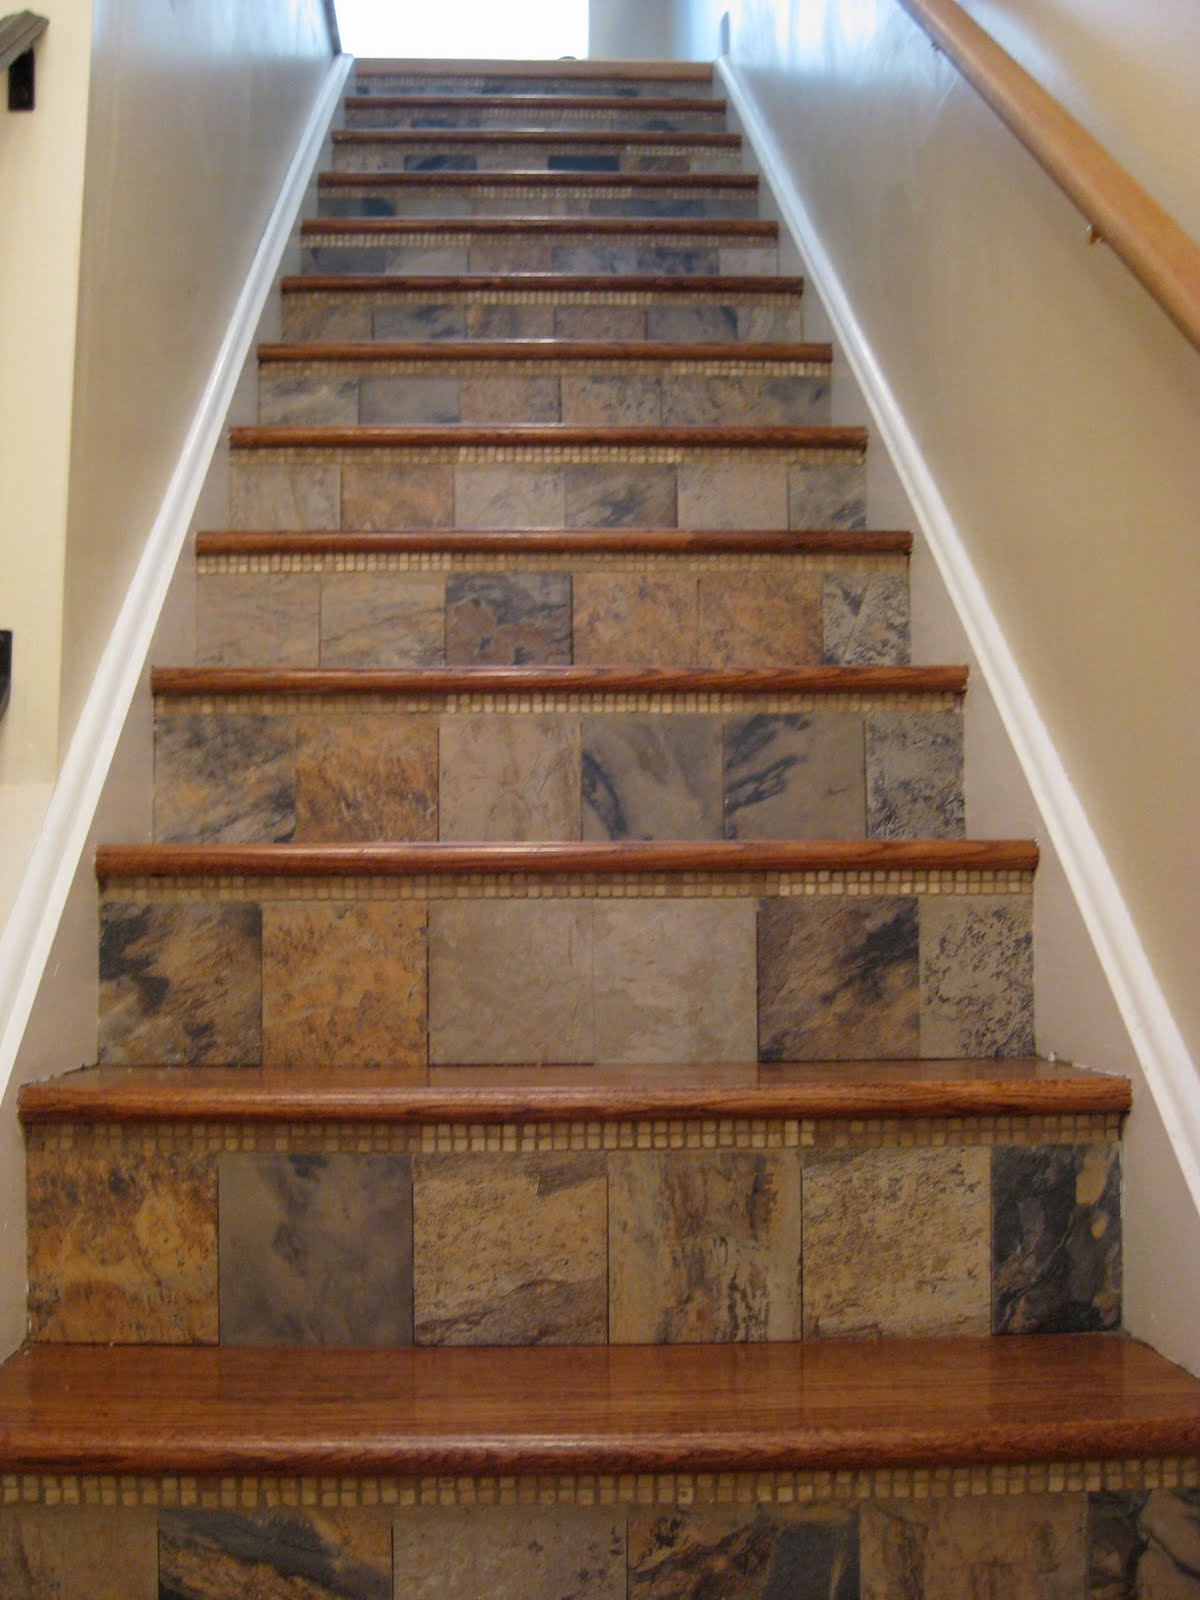 Make A Statement With Your Stairs!